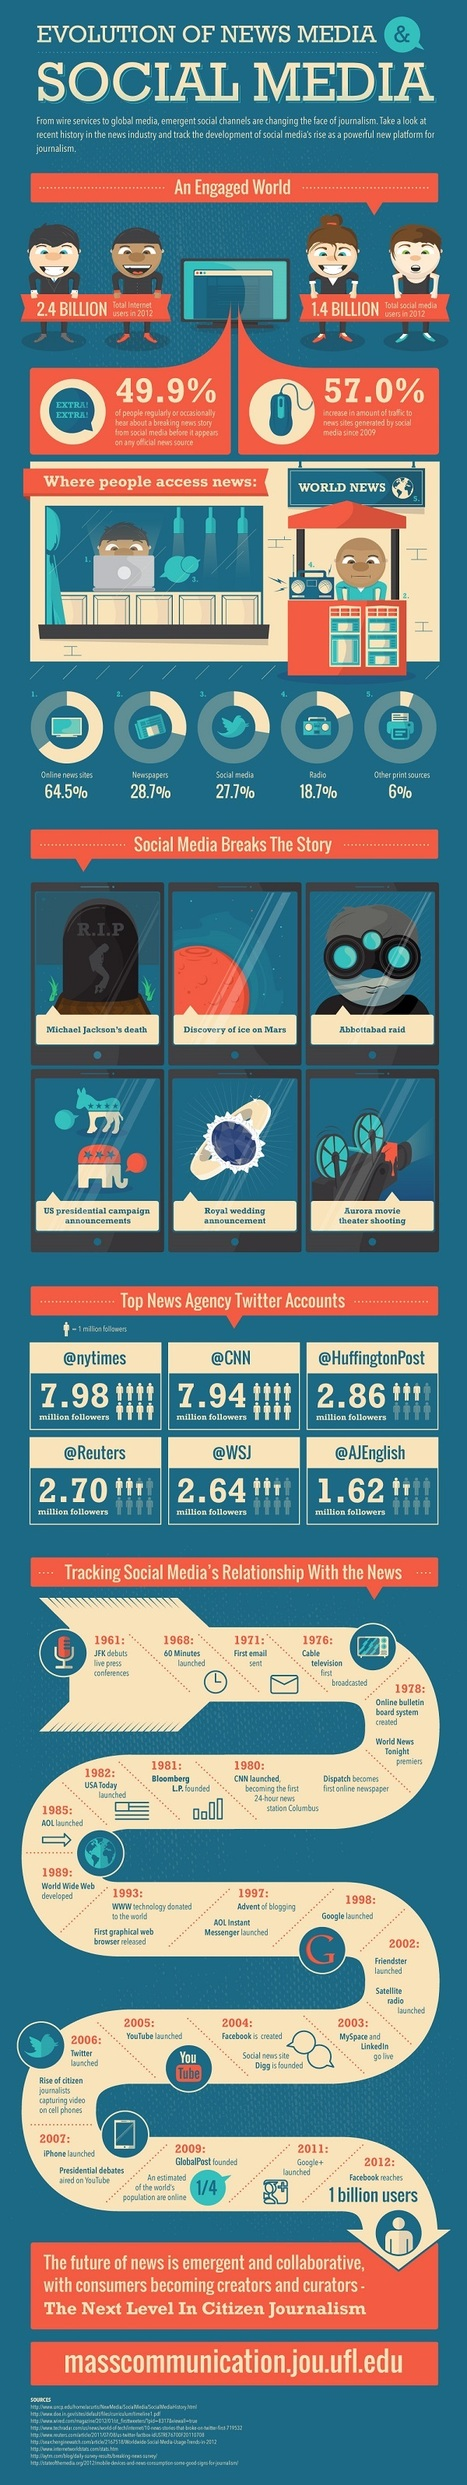 How Social Media Changed the Way We Consume News [Infographic] | Social Media Highlights | Scoop.it